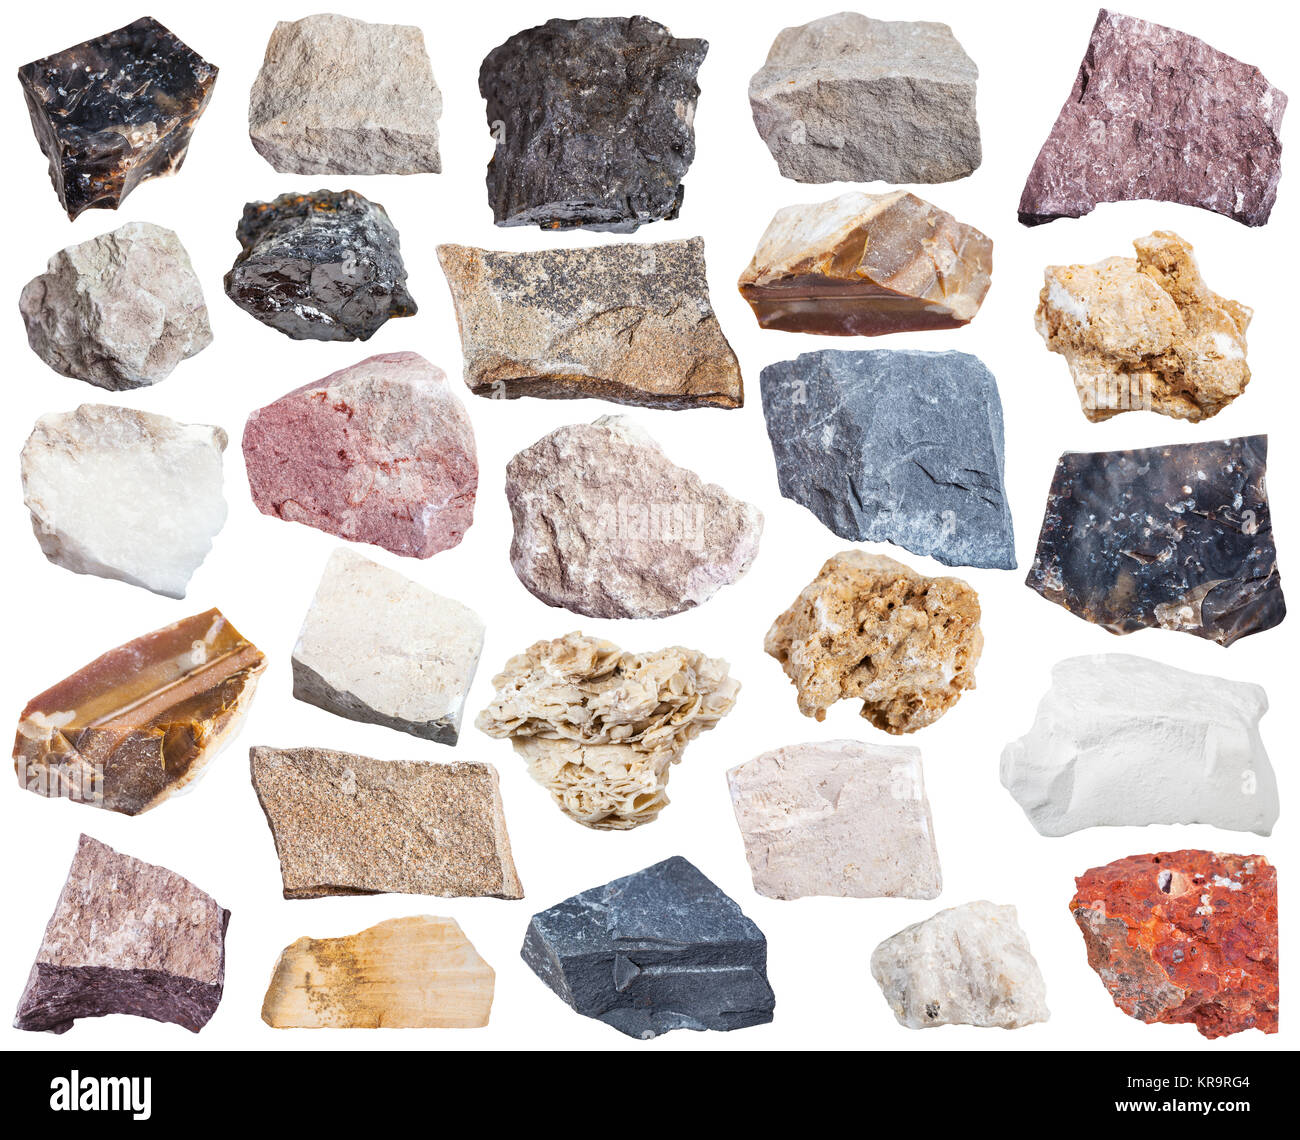 collection of sedimentary rock specimens - Stock Image